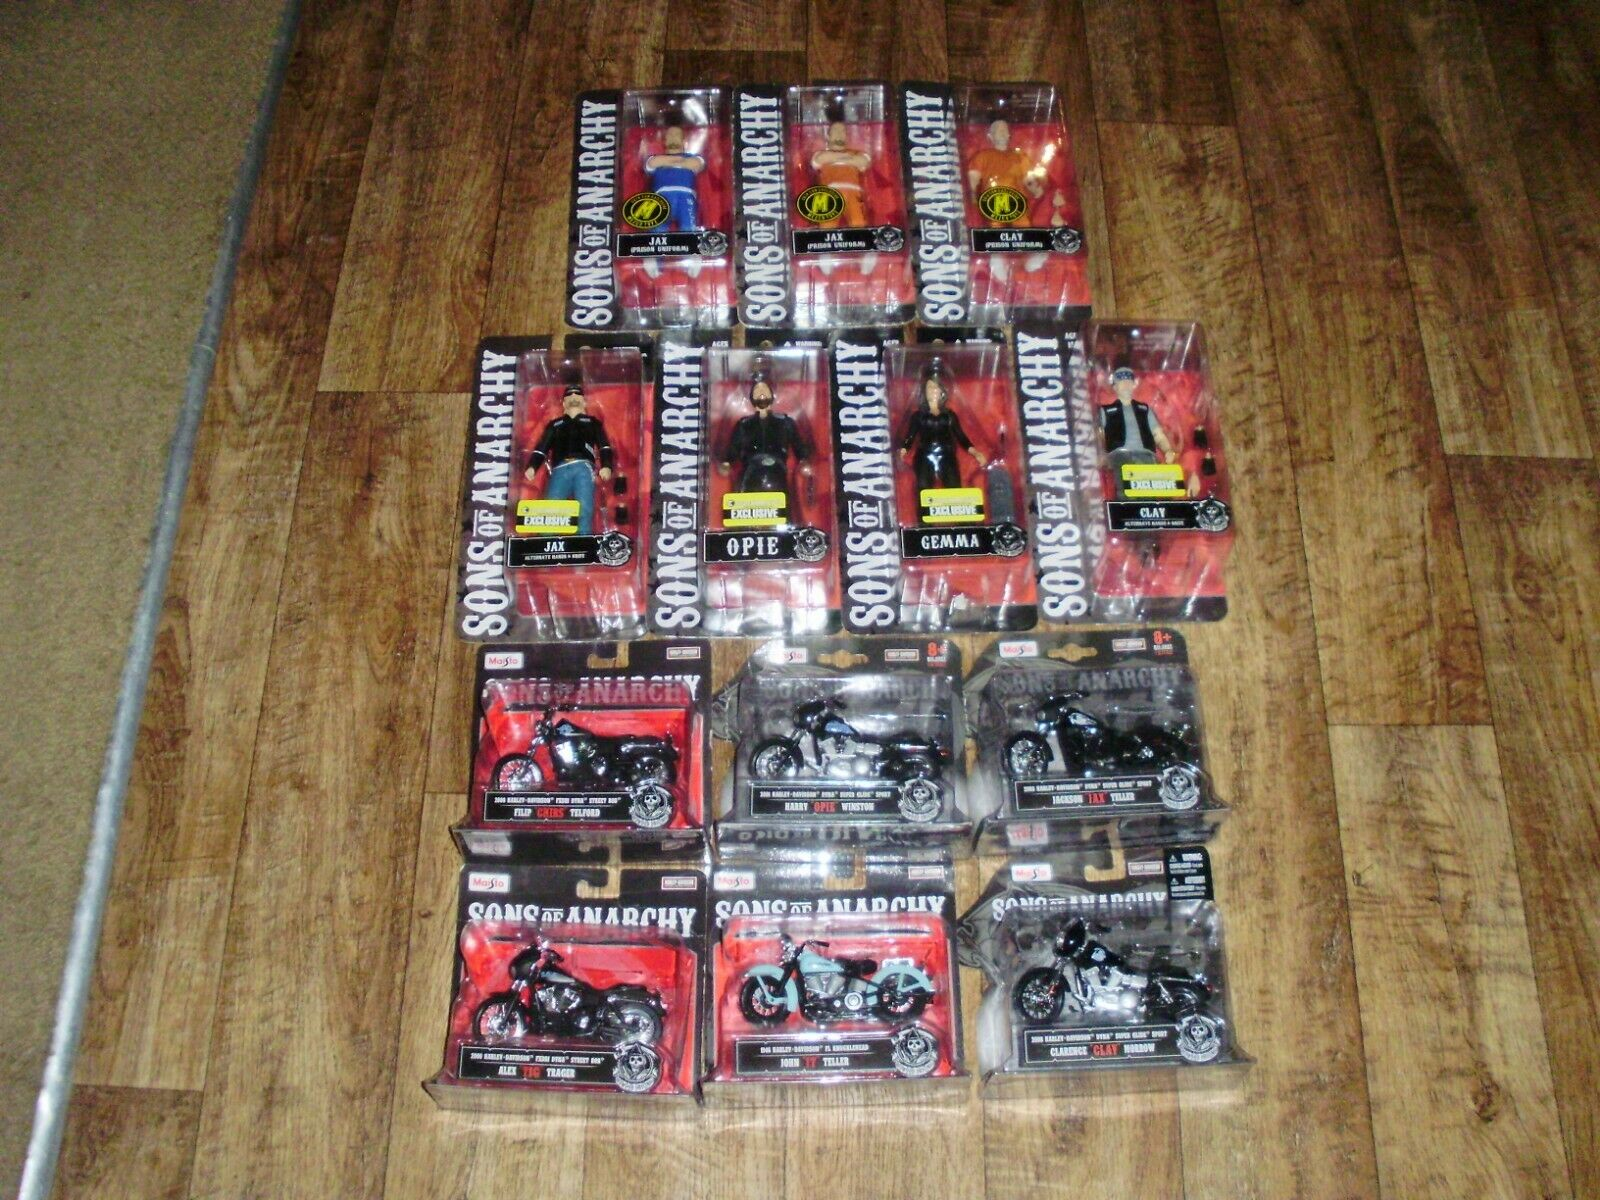 SONS OF ANARCHY SET EXCLUSIVE FIGURES(7) AND SET OF ALL 1 18 DIECAST MOTORCYCLES